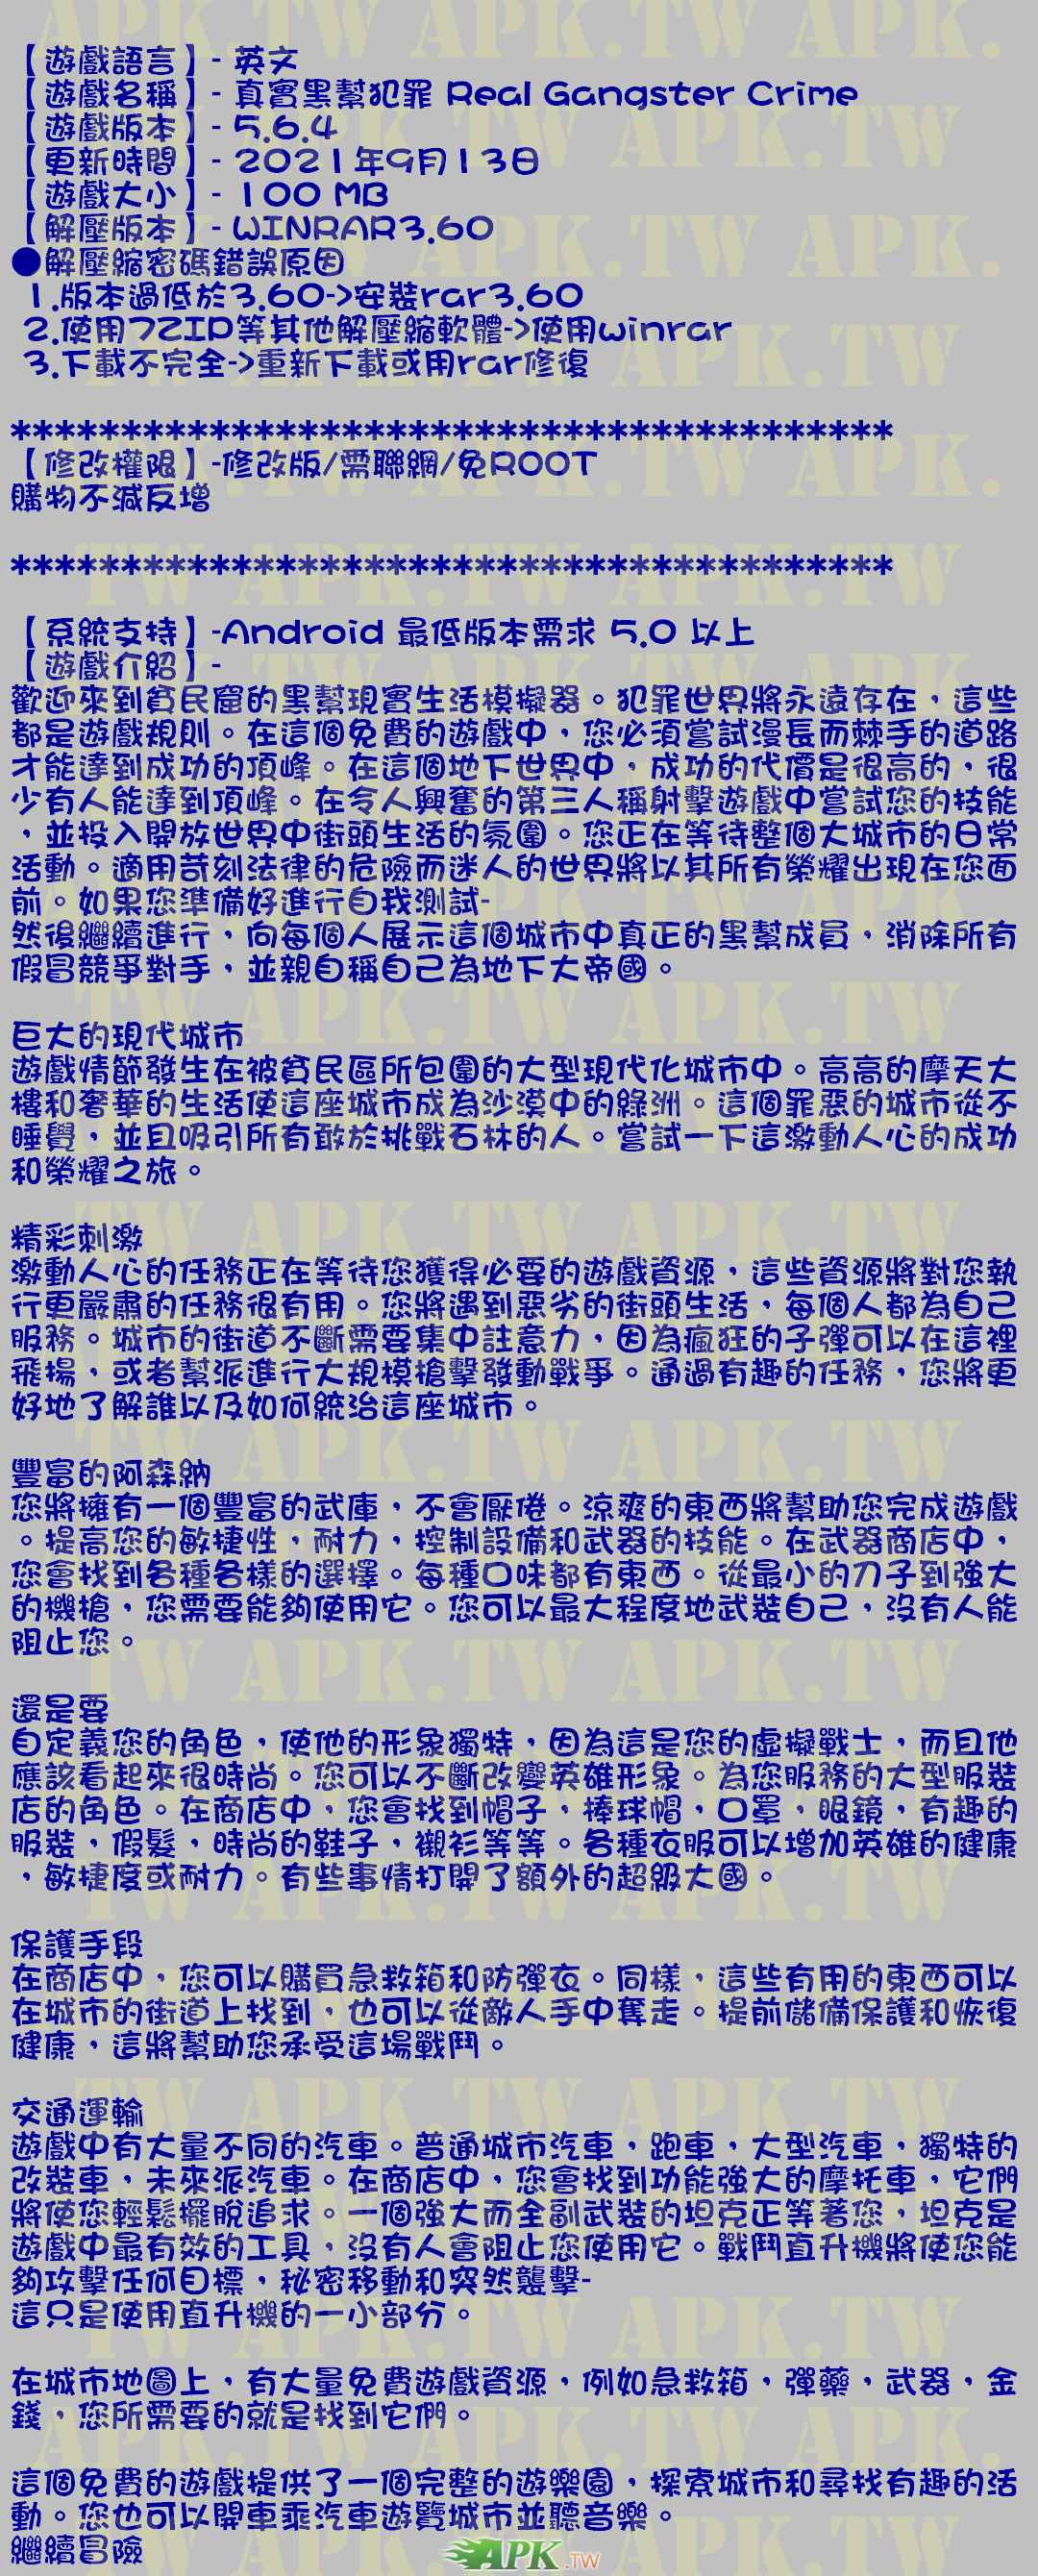 textimage.png